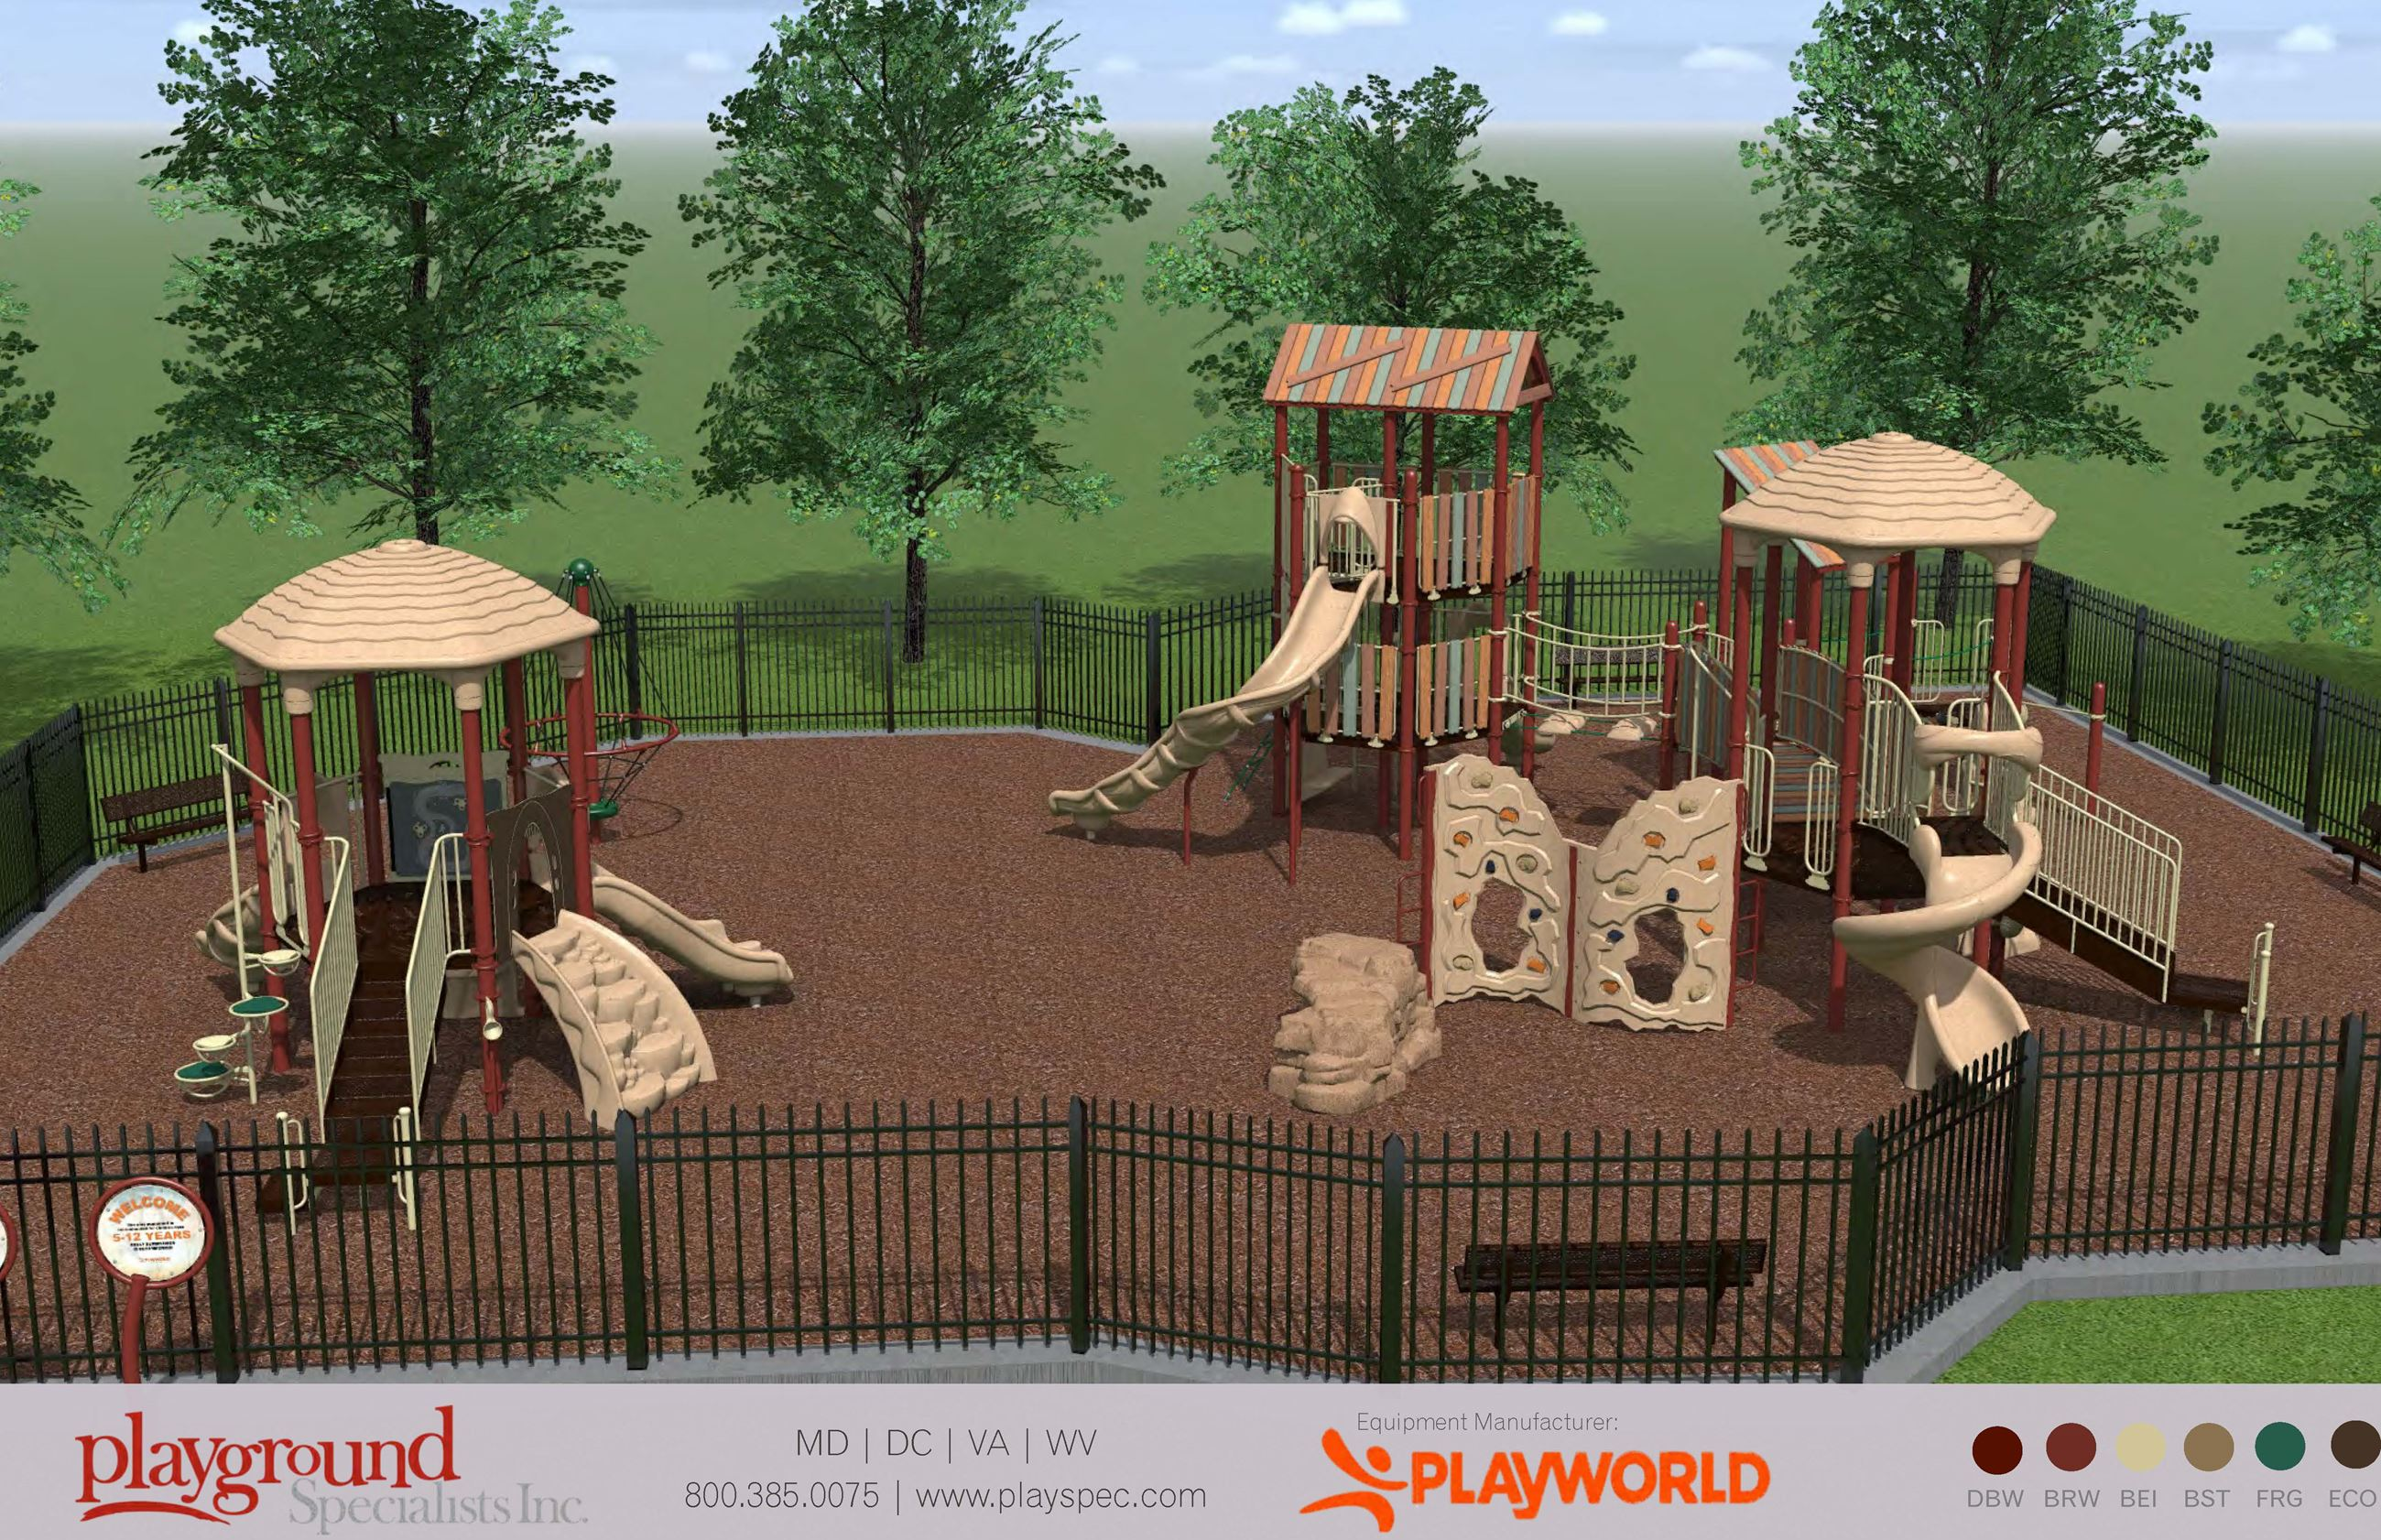 Middletown Playground